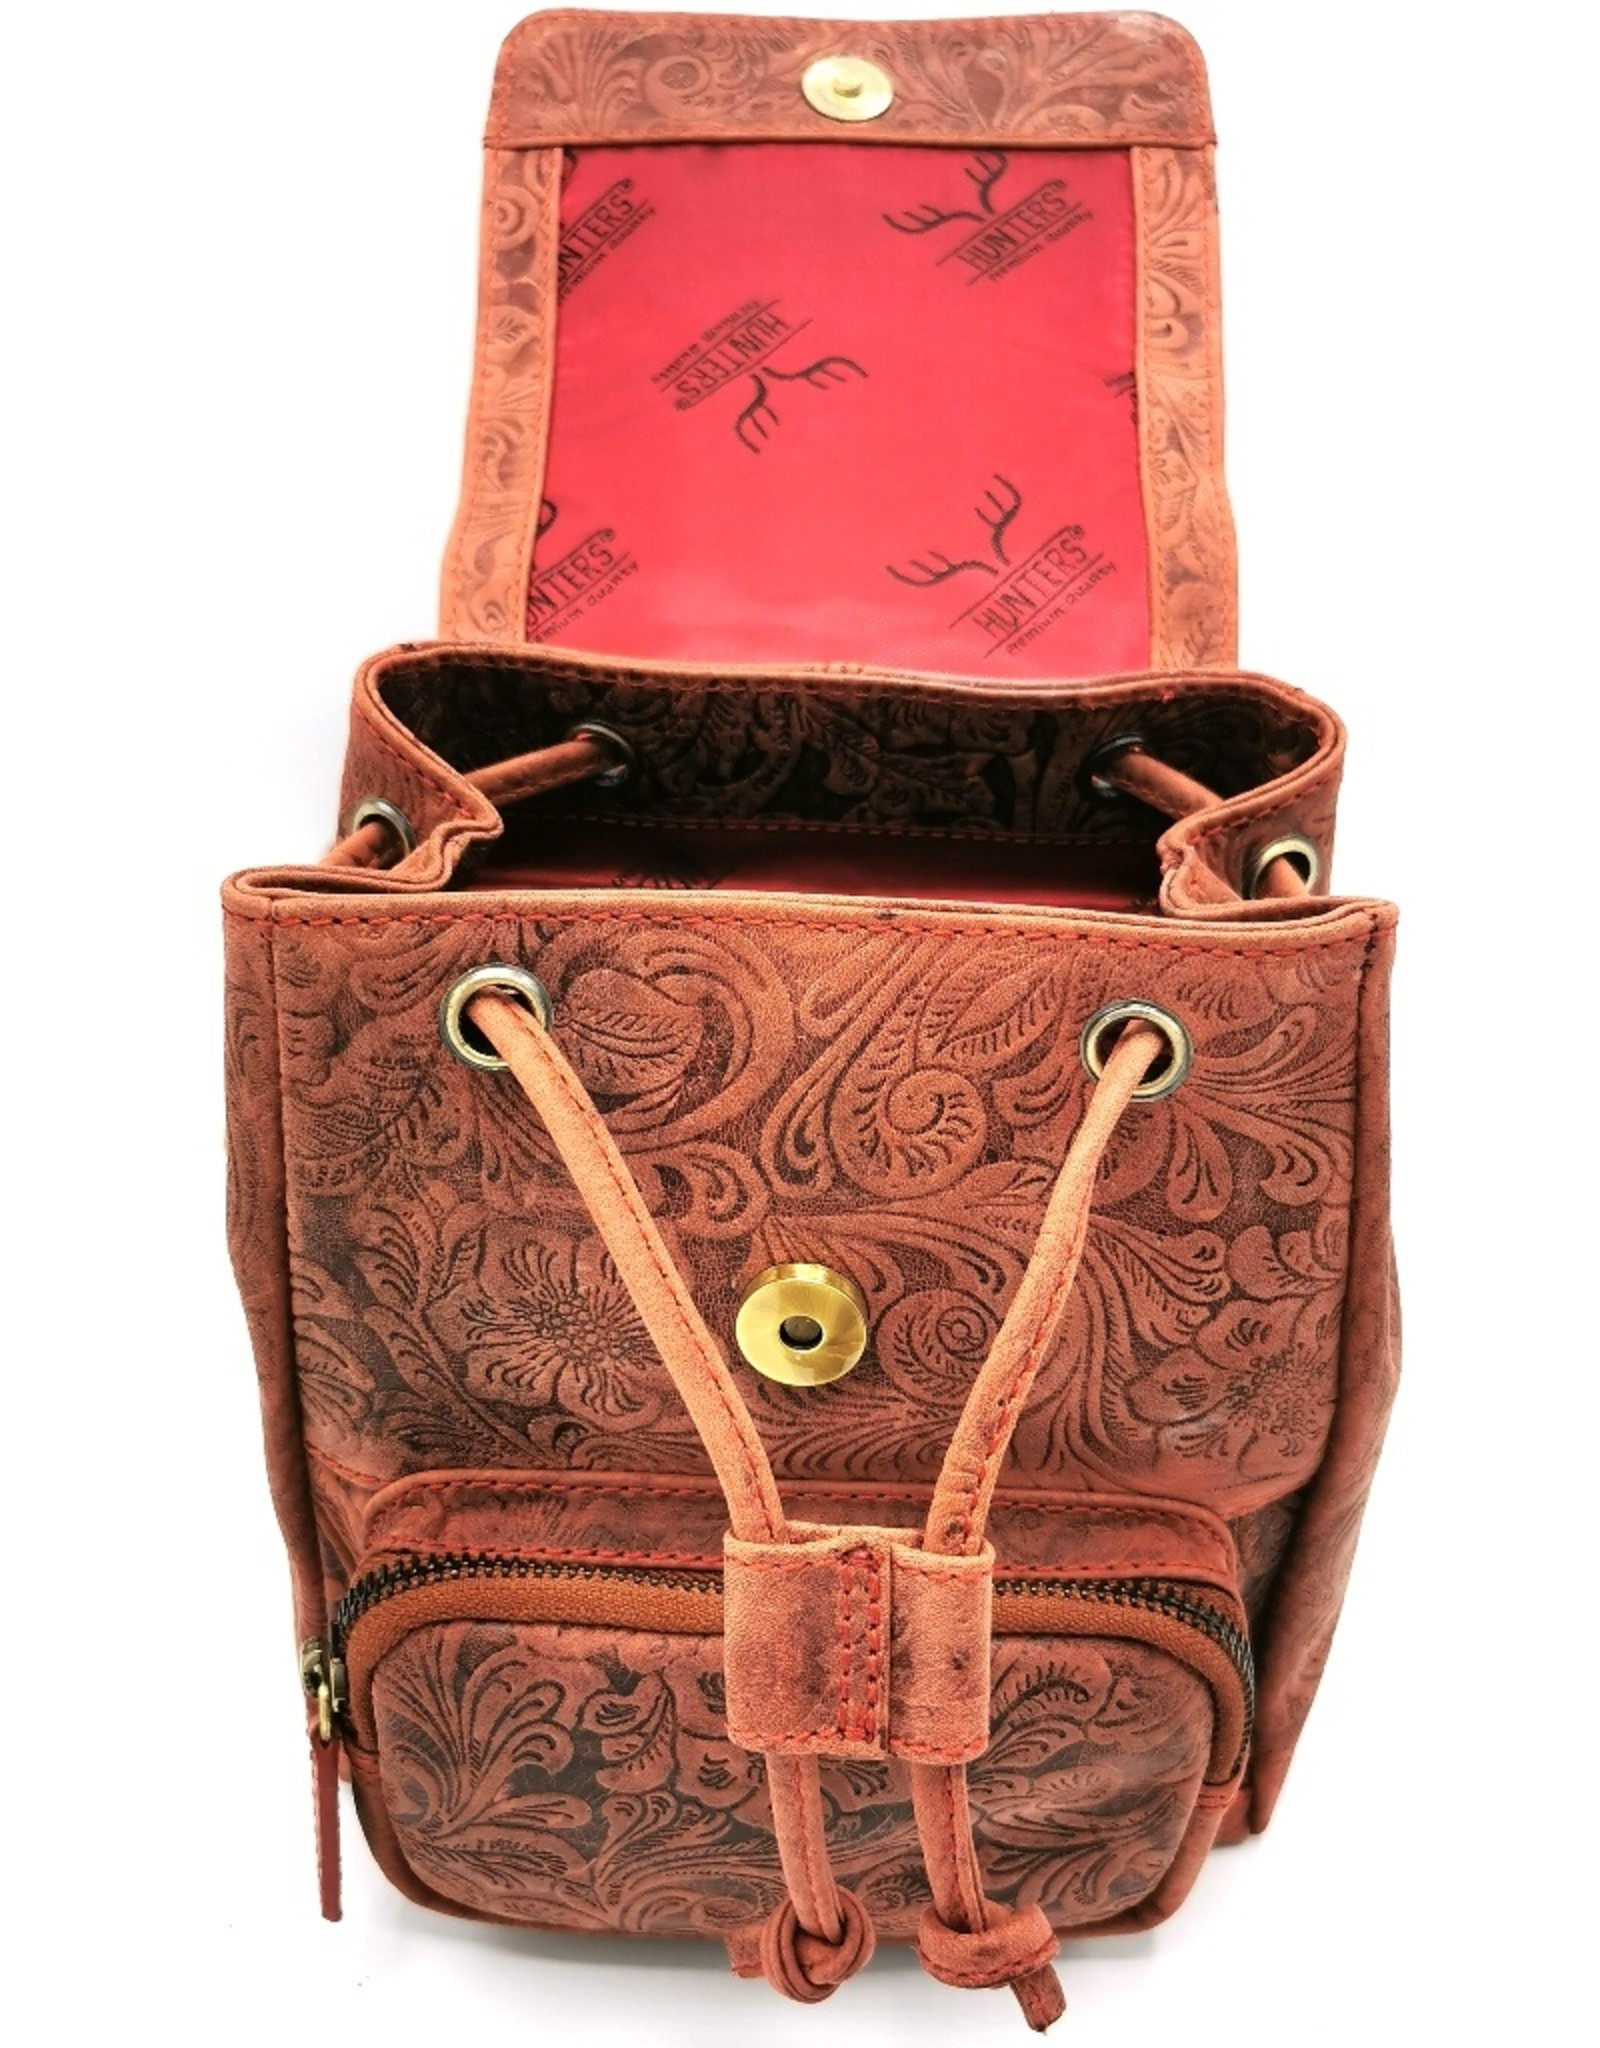 Hunters Leather backpacks  and leather shoppers - Leather Backpack with Relief Flower pattern vintage red